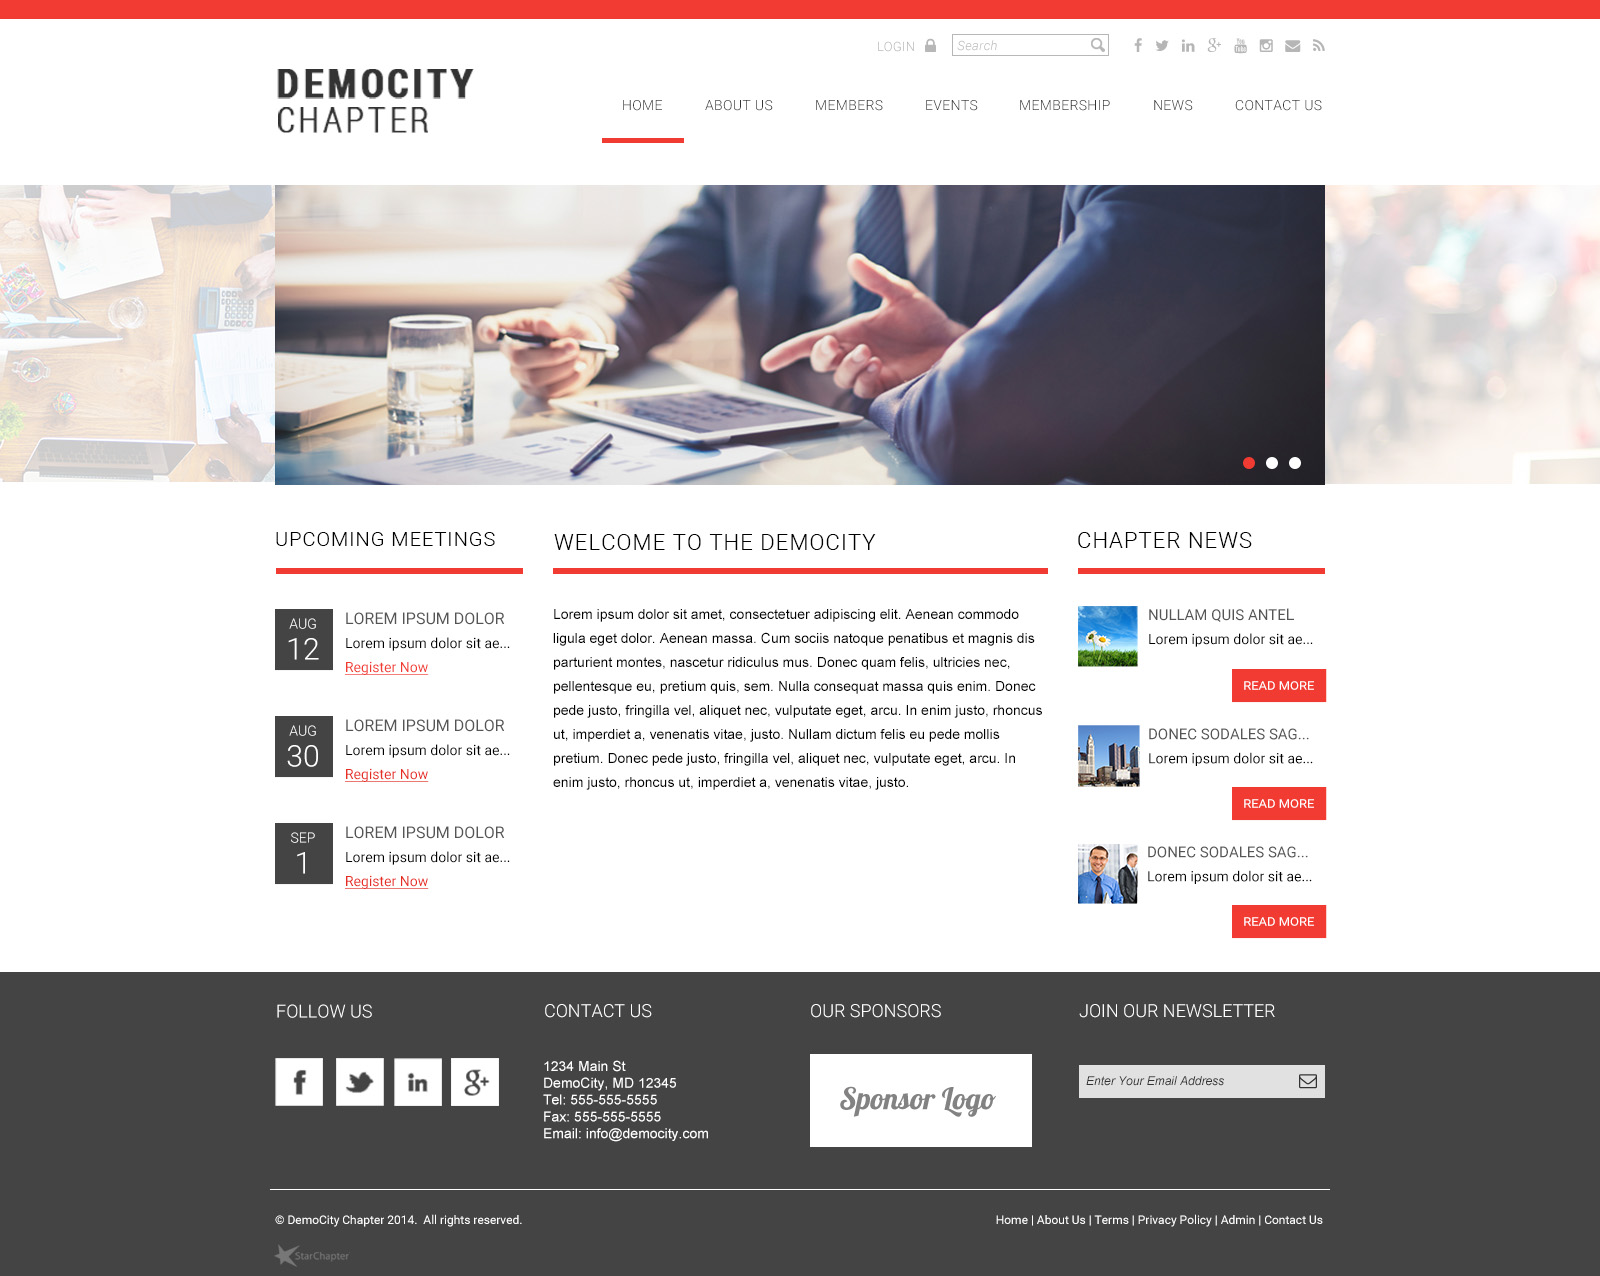 StarChapter is a one-stop-shop for non-profits and member associations, sample layout